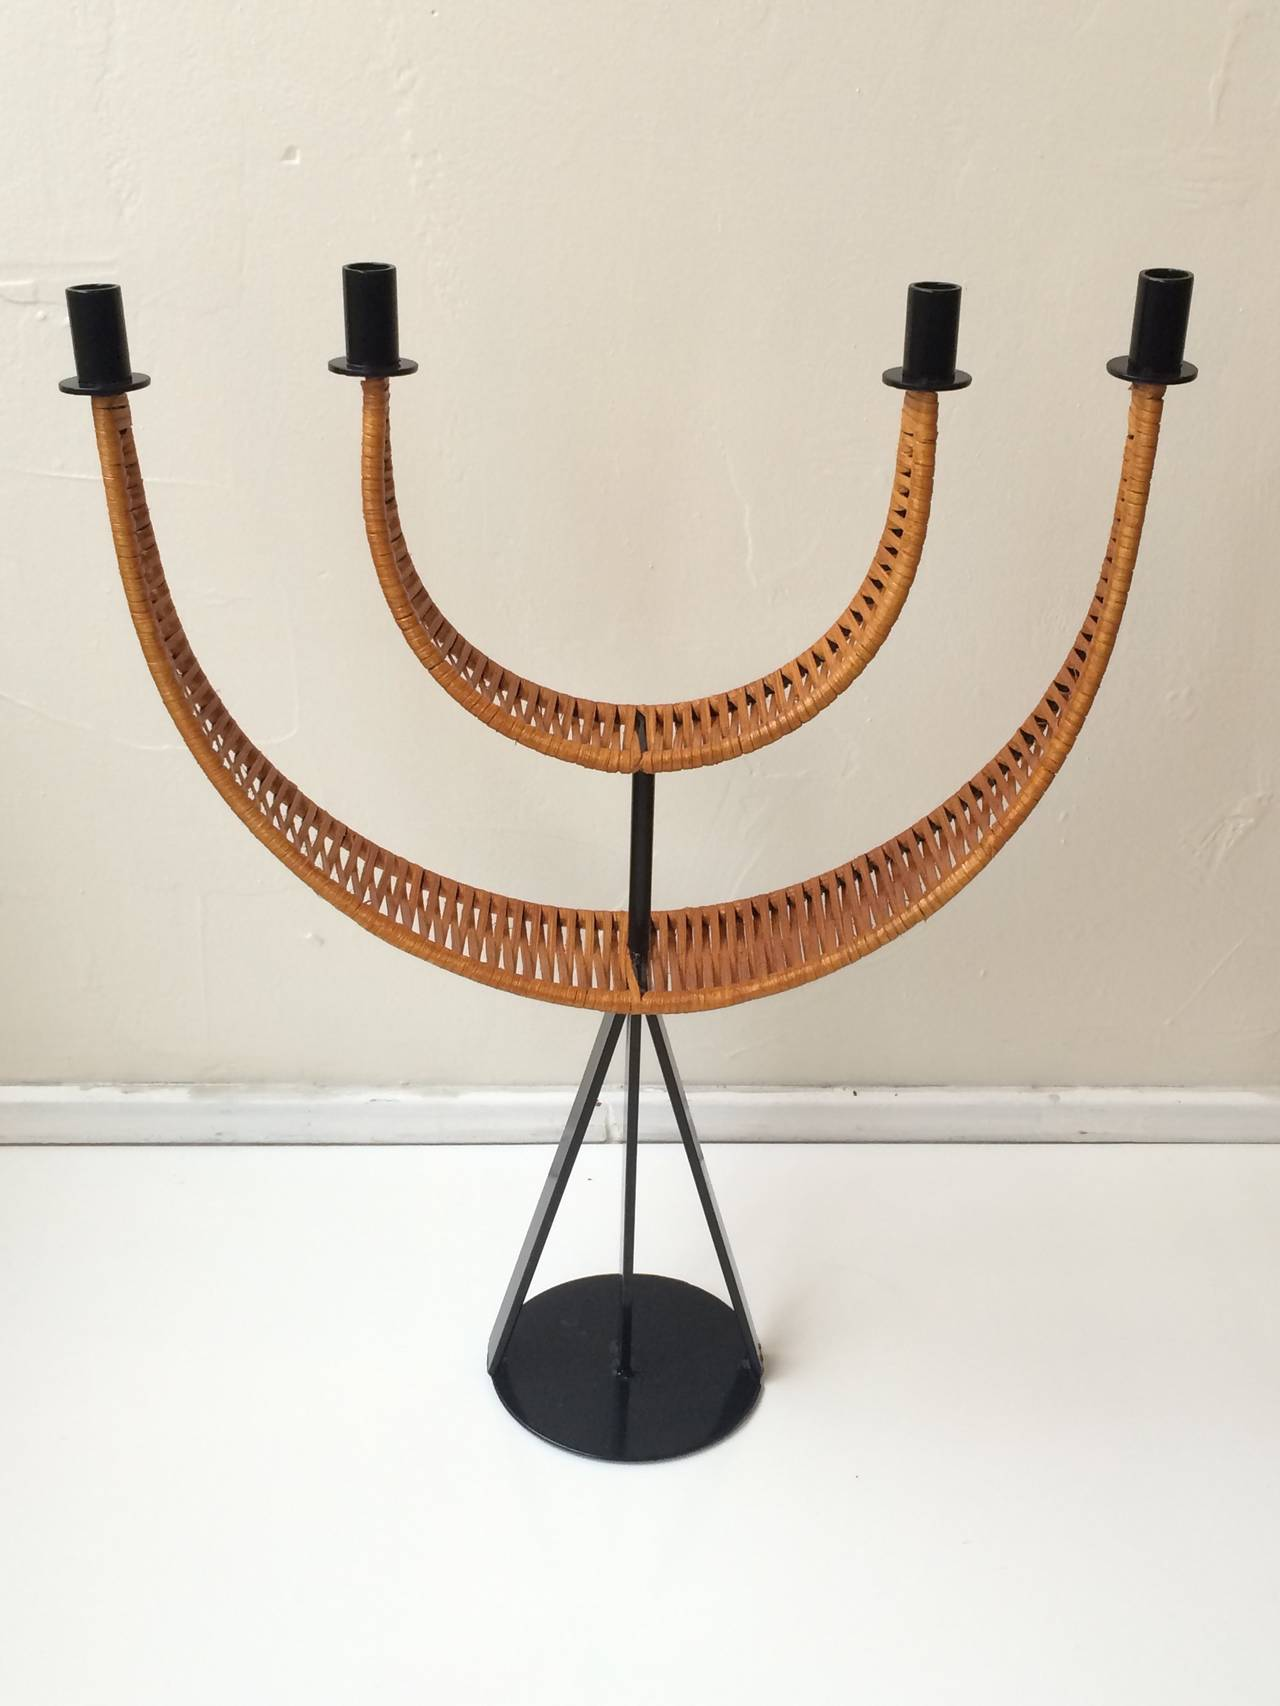 Stunnig candelabra designed by Arthur Umanoff wrapped in woven cane. Newly powder-coated and re-caned.